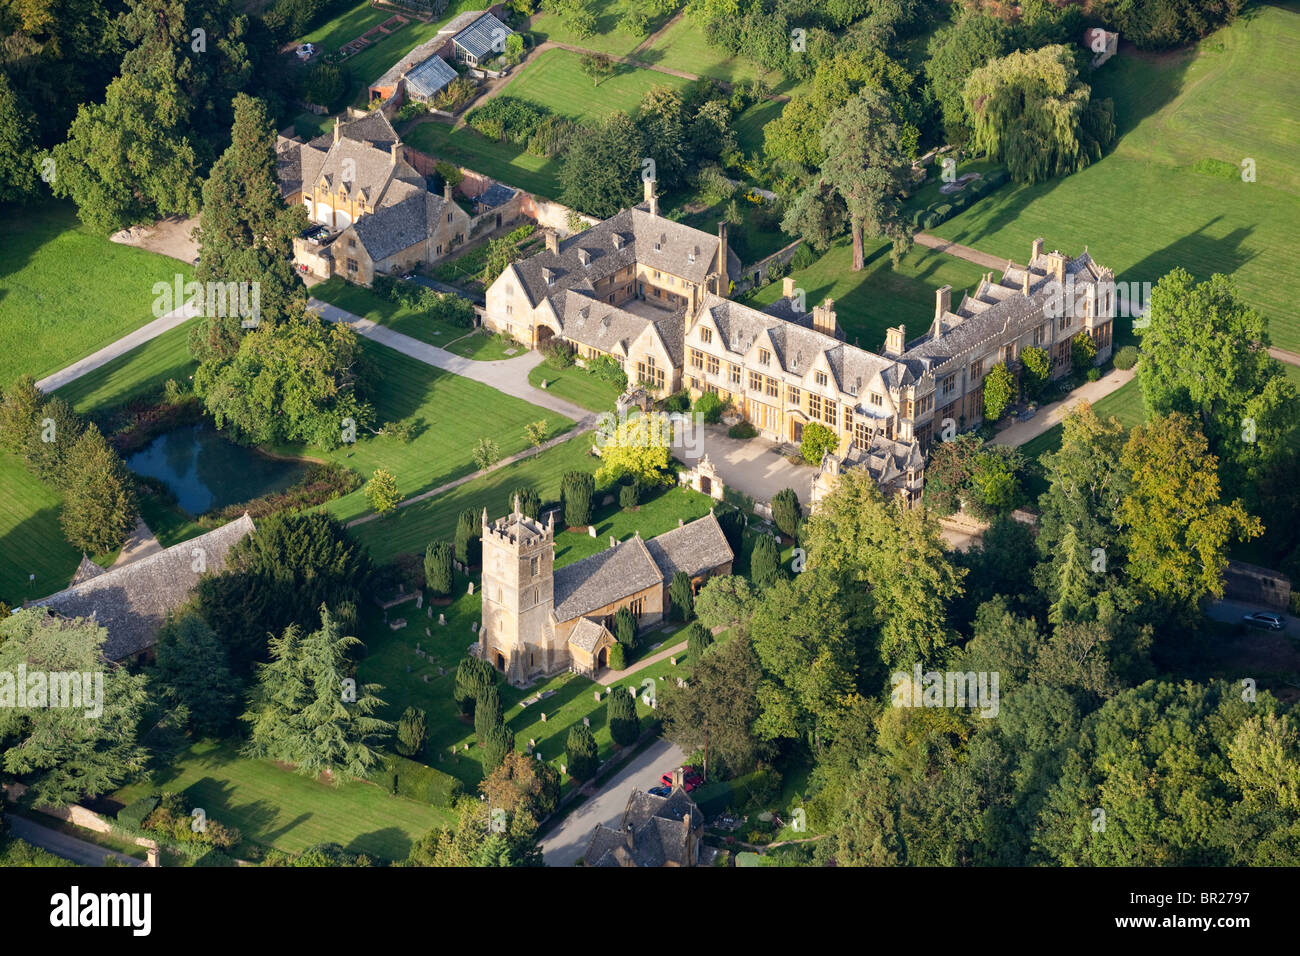 An aerial view of Stanway House and St Peters church in the Cotswold village of Stanway, Gloucestershire from the Stock Photo